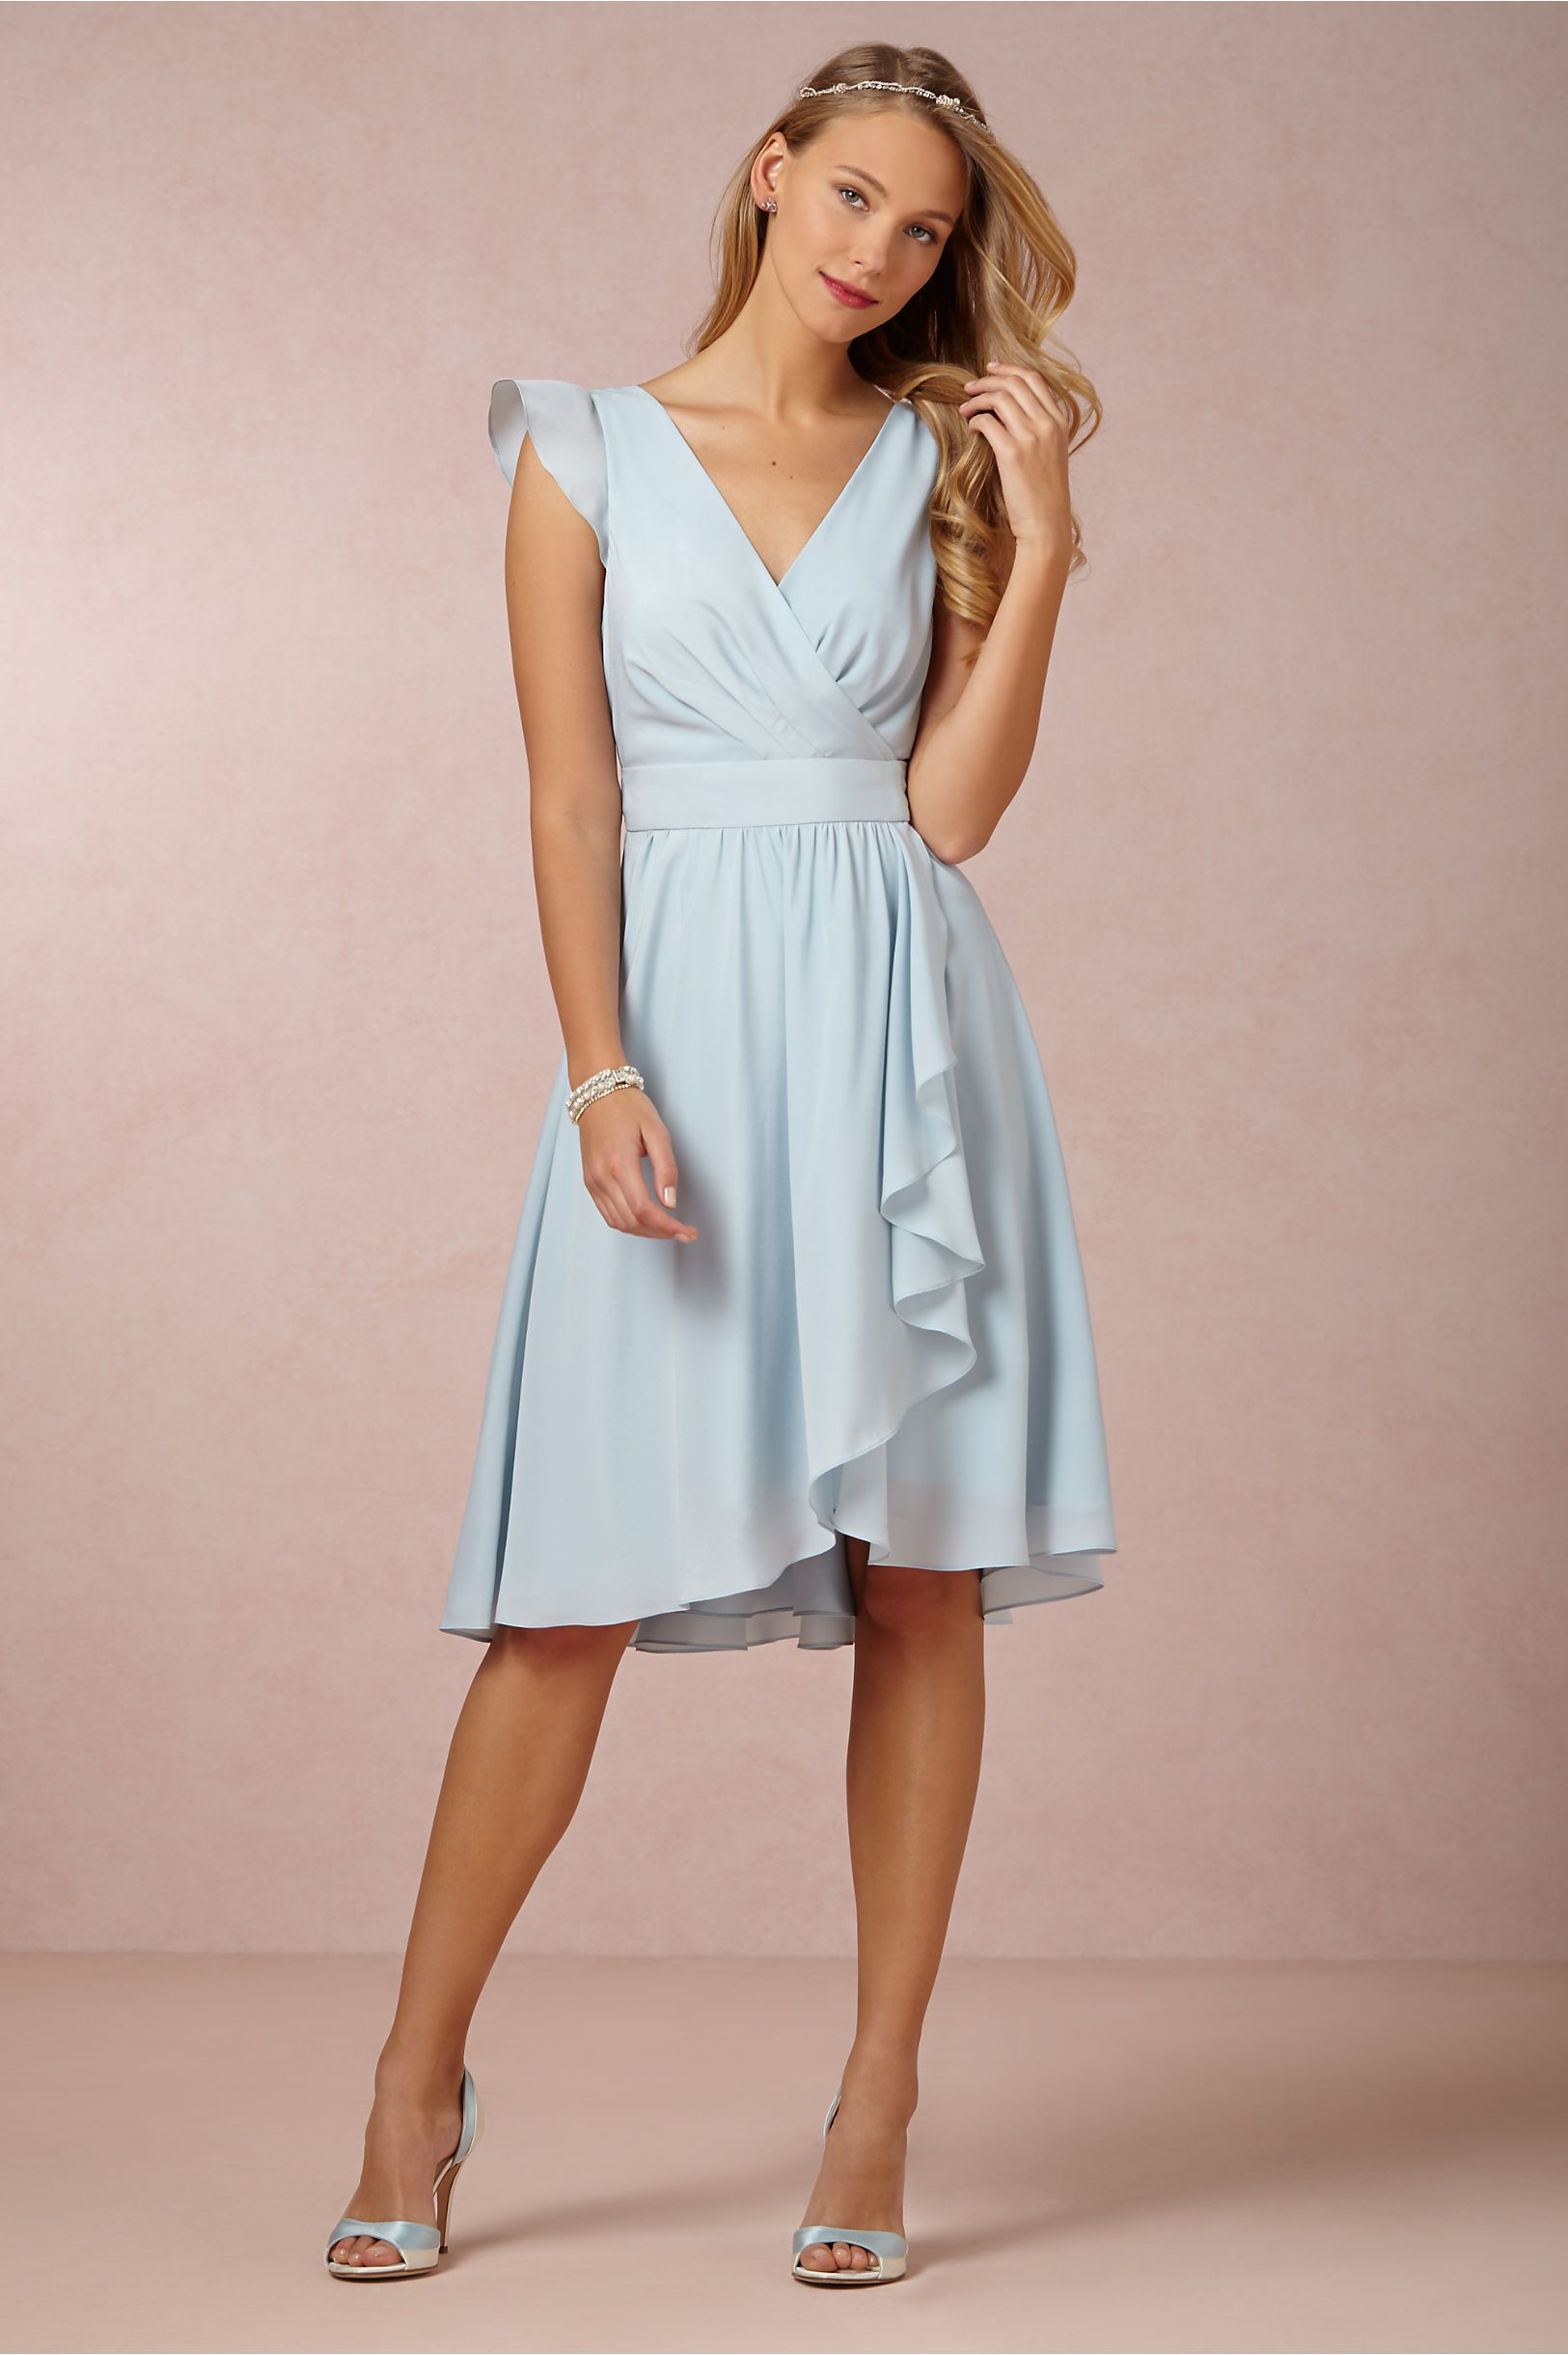 Sydney Dress from BHLDN.  220. Made by Hitheto. Same as Lilly and Meghan s  dress. Crepe fabric. Perfect! 861f4e93bc5